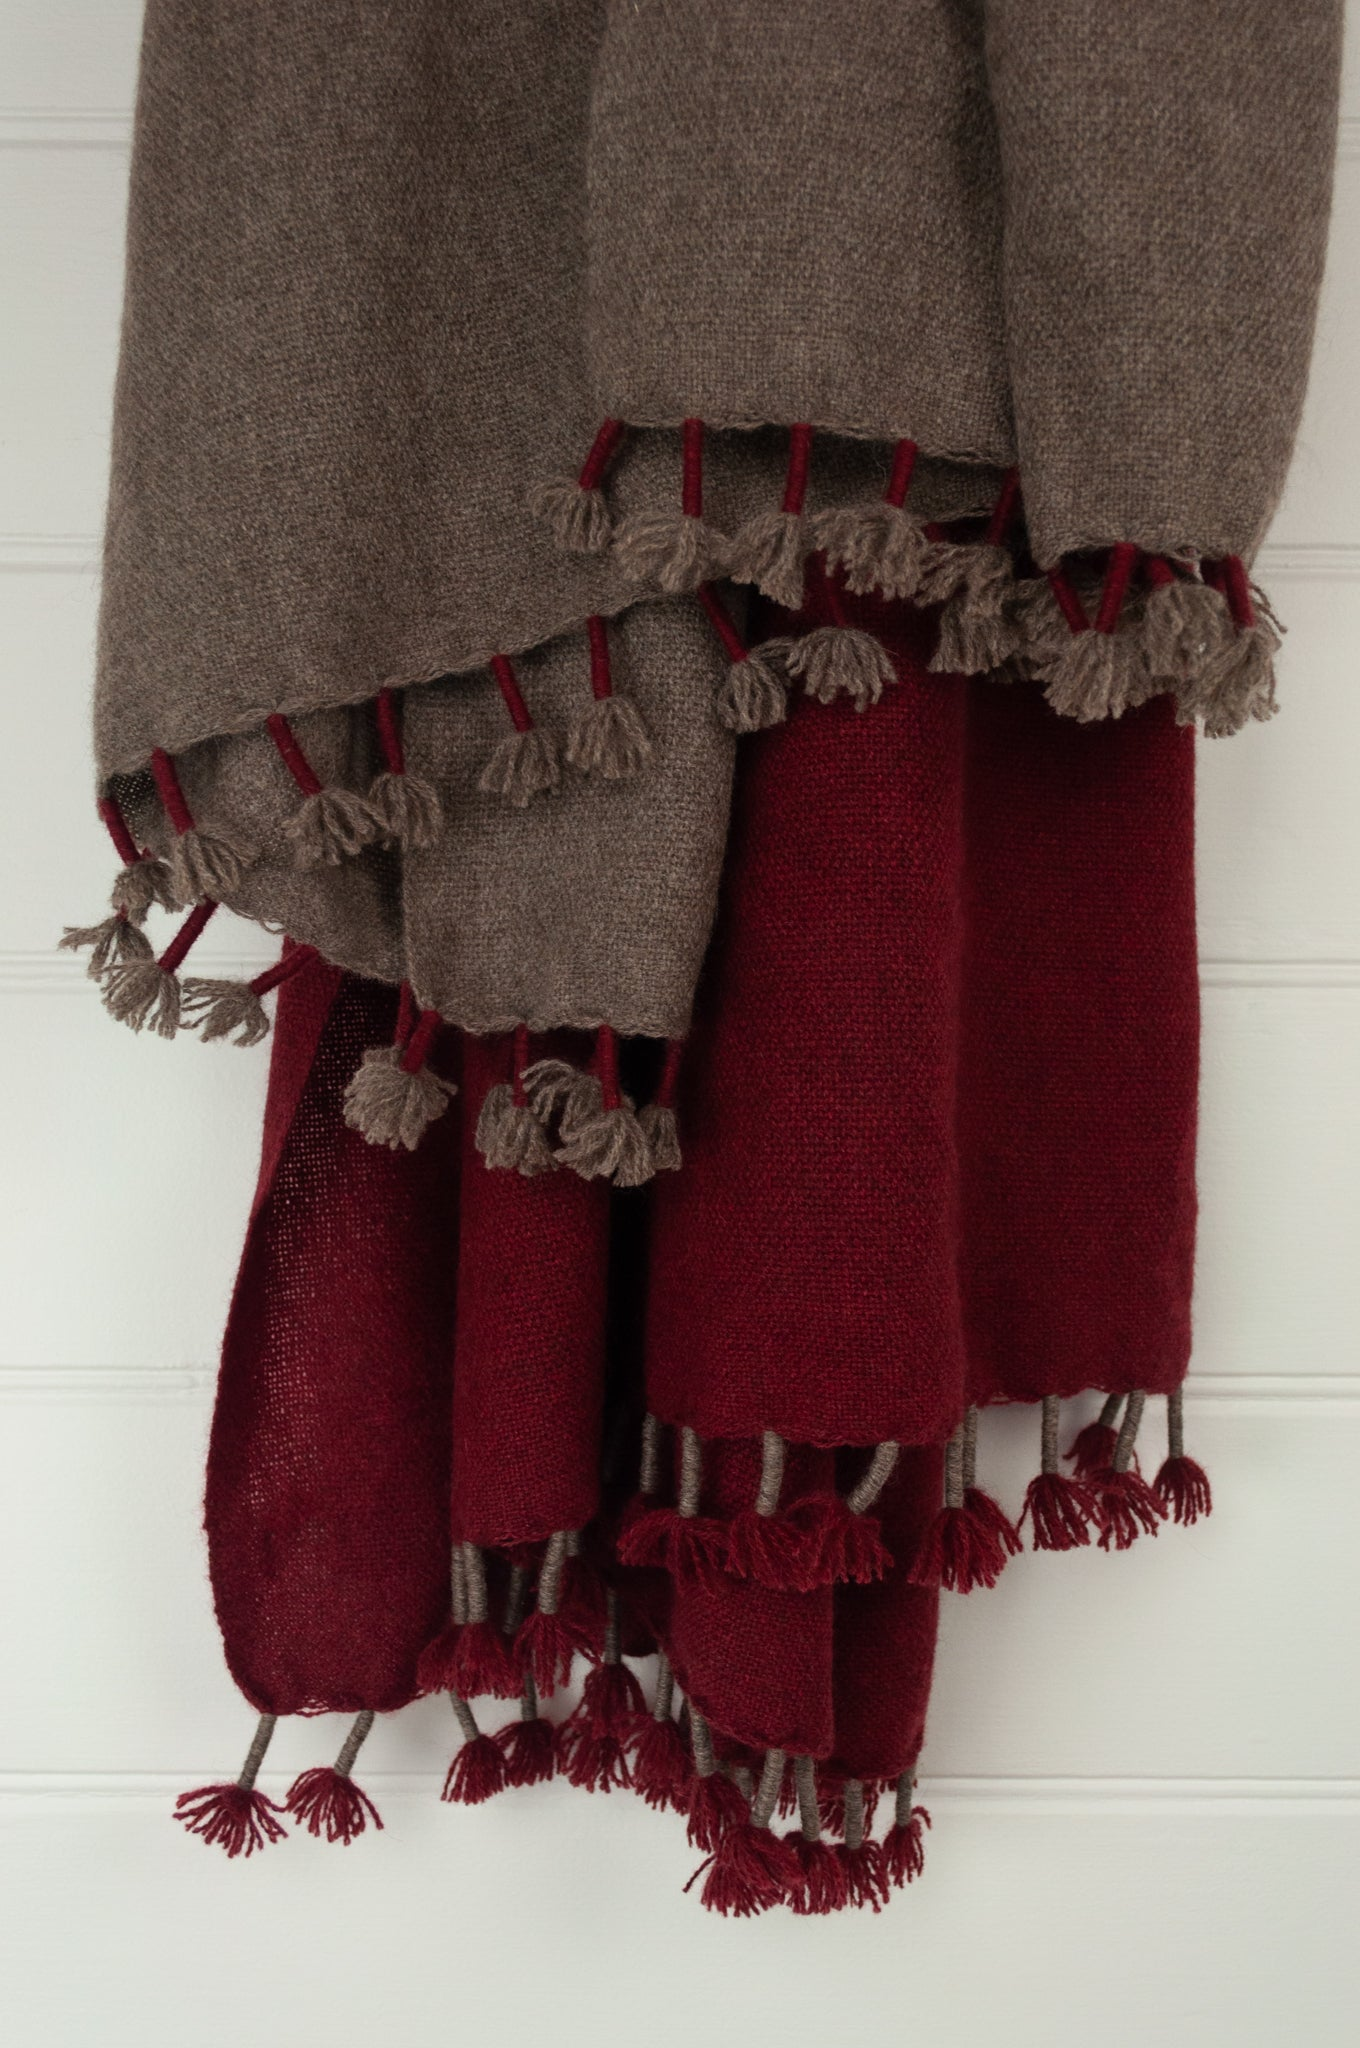 Baby yak wool handwoven tasseled throw rug in cherry red ombre fading to natural.